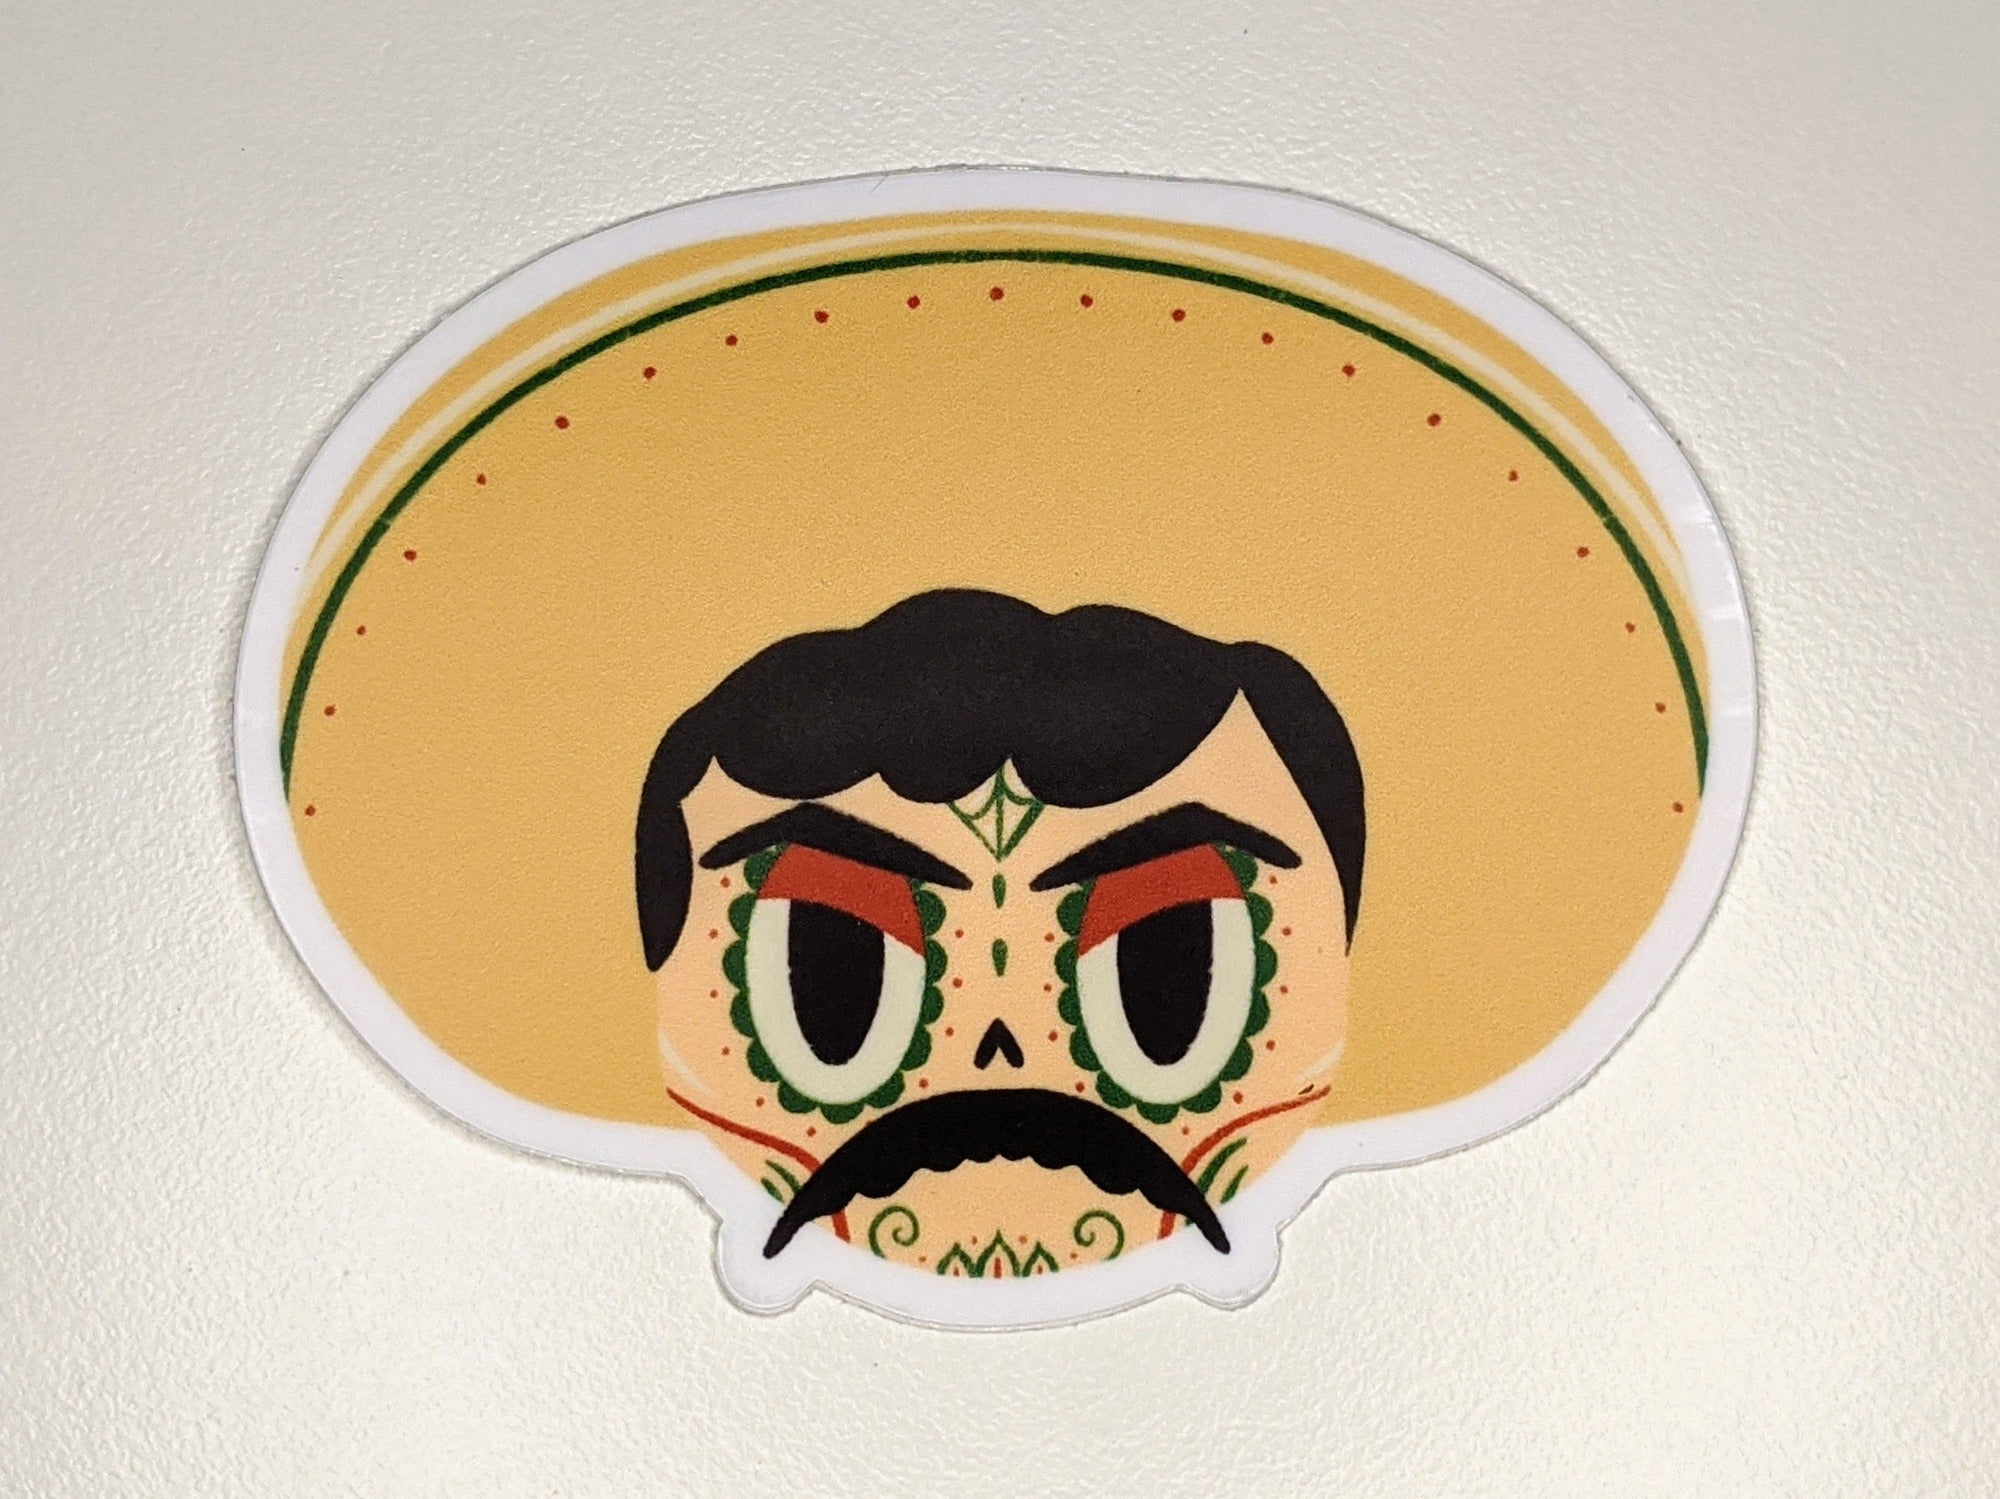 elimiliano zapata mexican revolutionary sugar skull vinyl sticker on white background